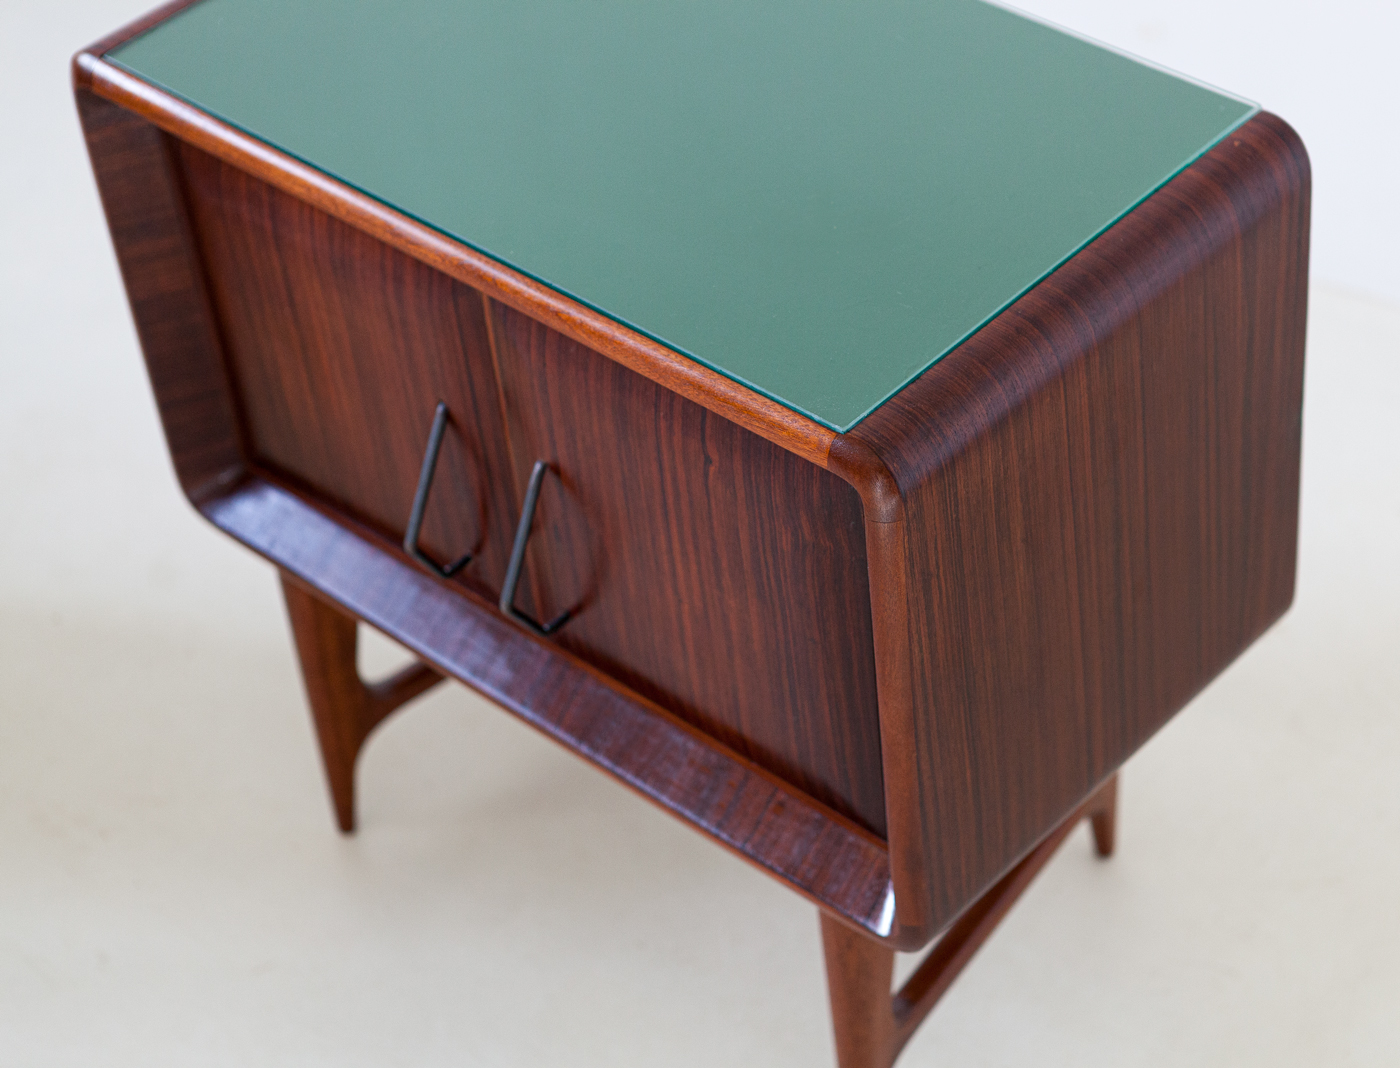 1950s-italian-rosewood-bedside-tables-with-green-glass-top-5-bt83